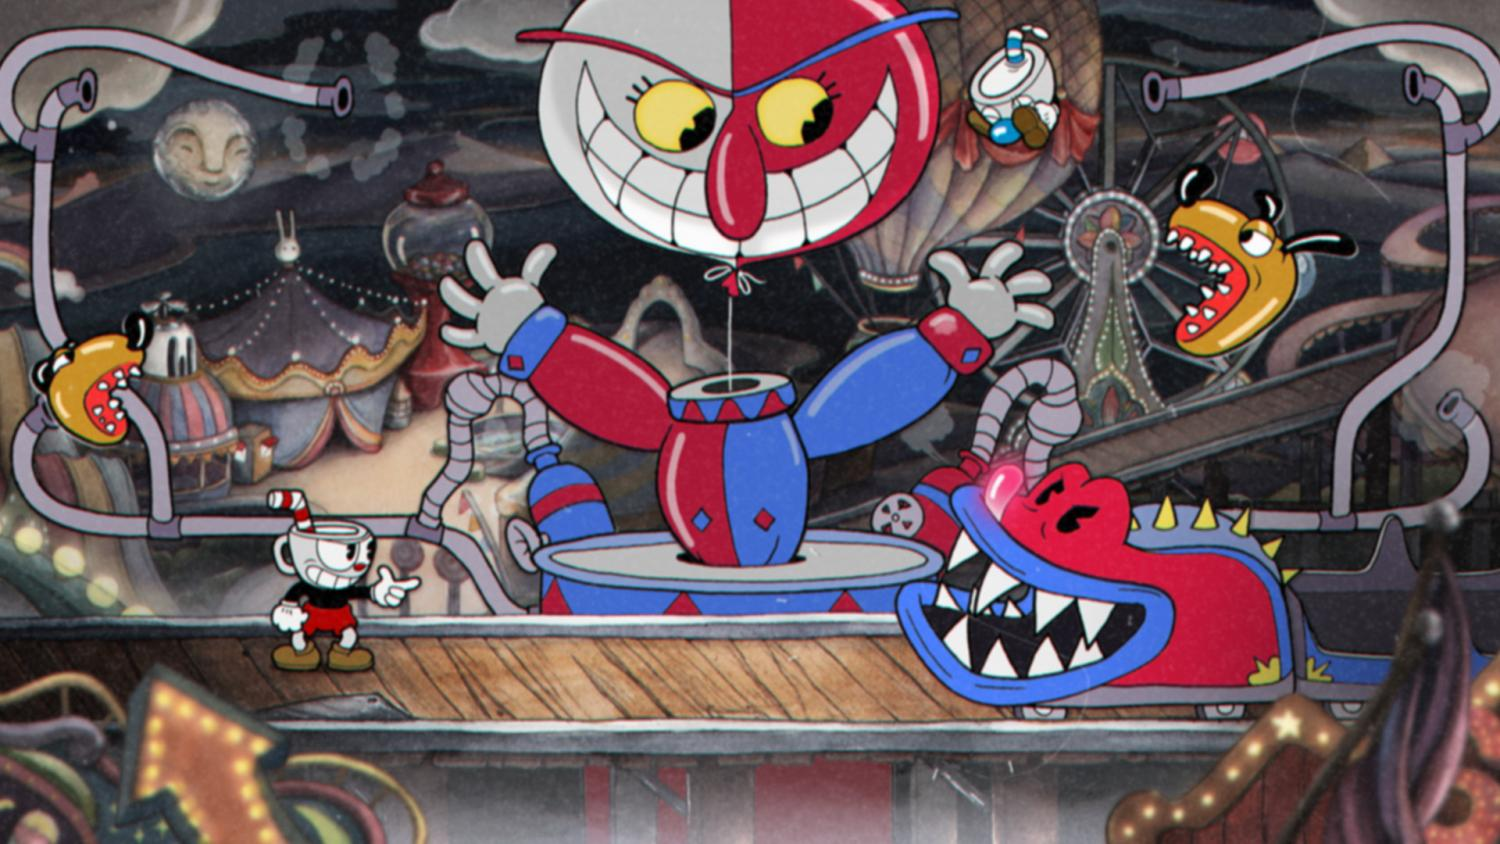 'Cuphead' will dazzle your eyes and melt your brain